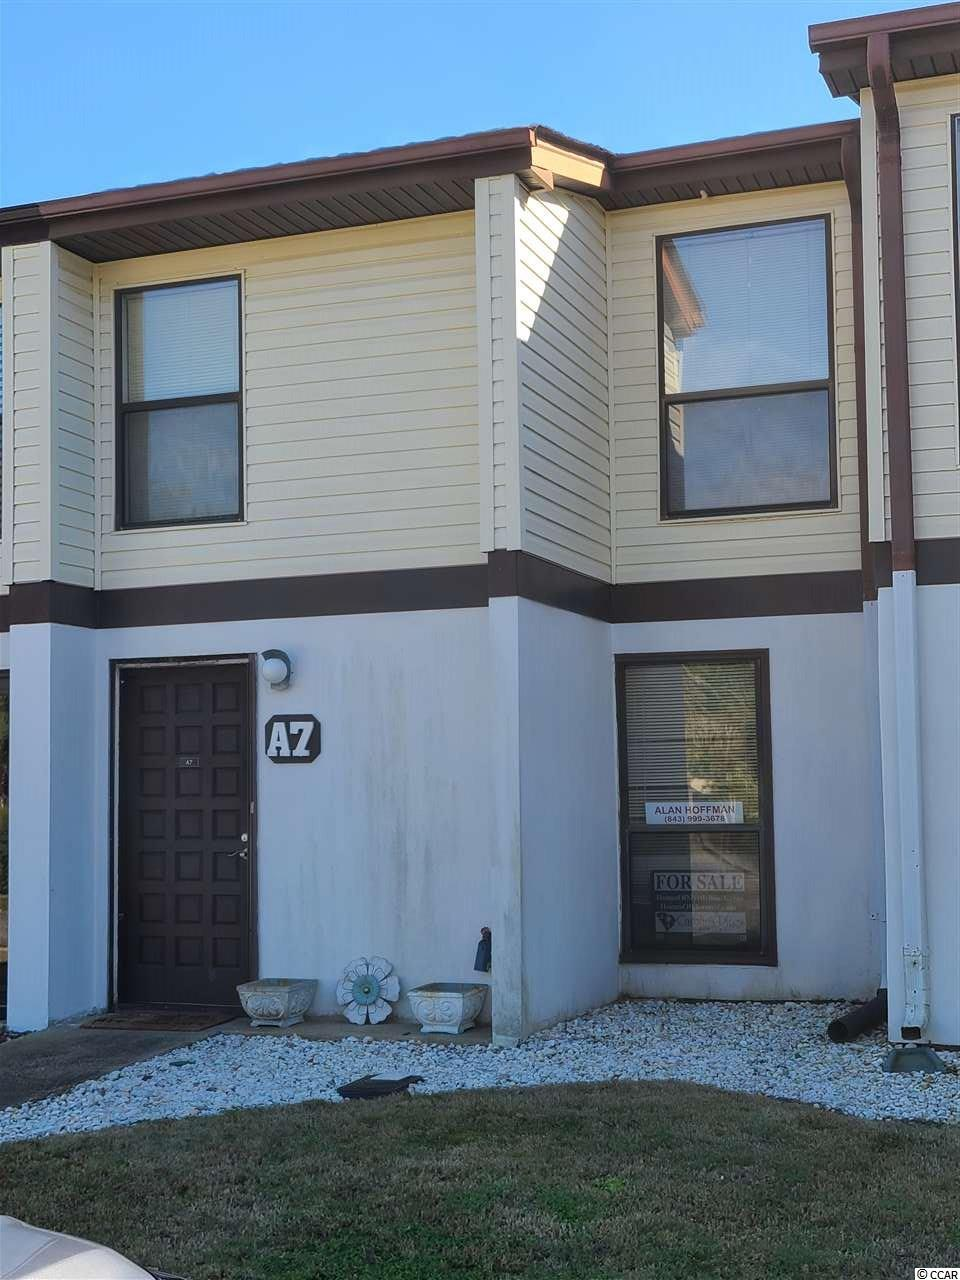 Welcome home! This very sought out townhouse located in the desirable neighborhood, The Villages of Possum Trot, is the beauty you have been looking for! Second to end unit with a private fenced in patio for your enjoyment. 2 bedrooms, 1.5 baths, with a spacious living room, kitchen, separate dining area, and laundry closet! There is not much more needed in this one! All furniture is included, except the silver set in the second bedroom. You are less than a mile or so from the beautiful South Carolina beaches! Hop in your golf cart and explore the area! Contact your Realtor today for a showing! Believe me, this one will NOT last long!